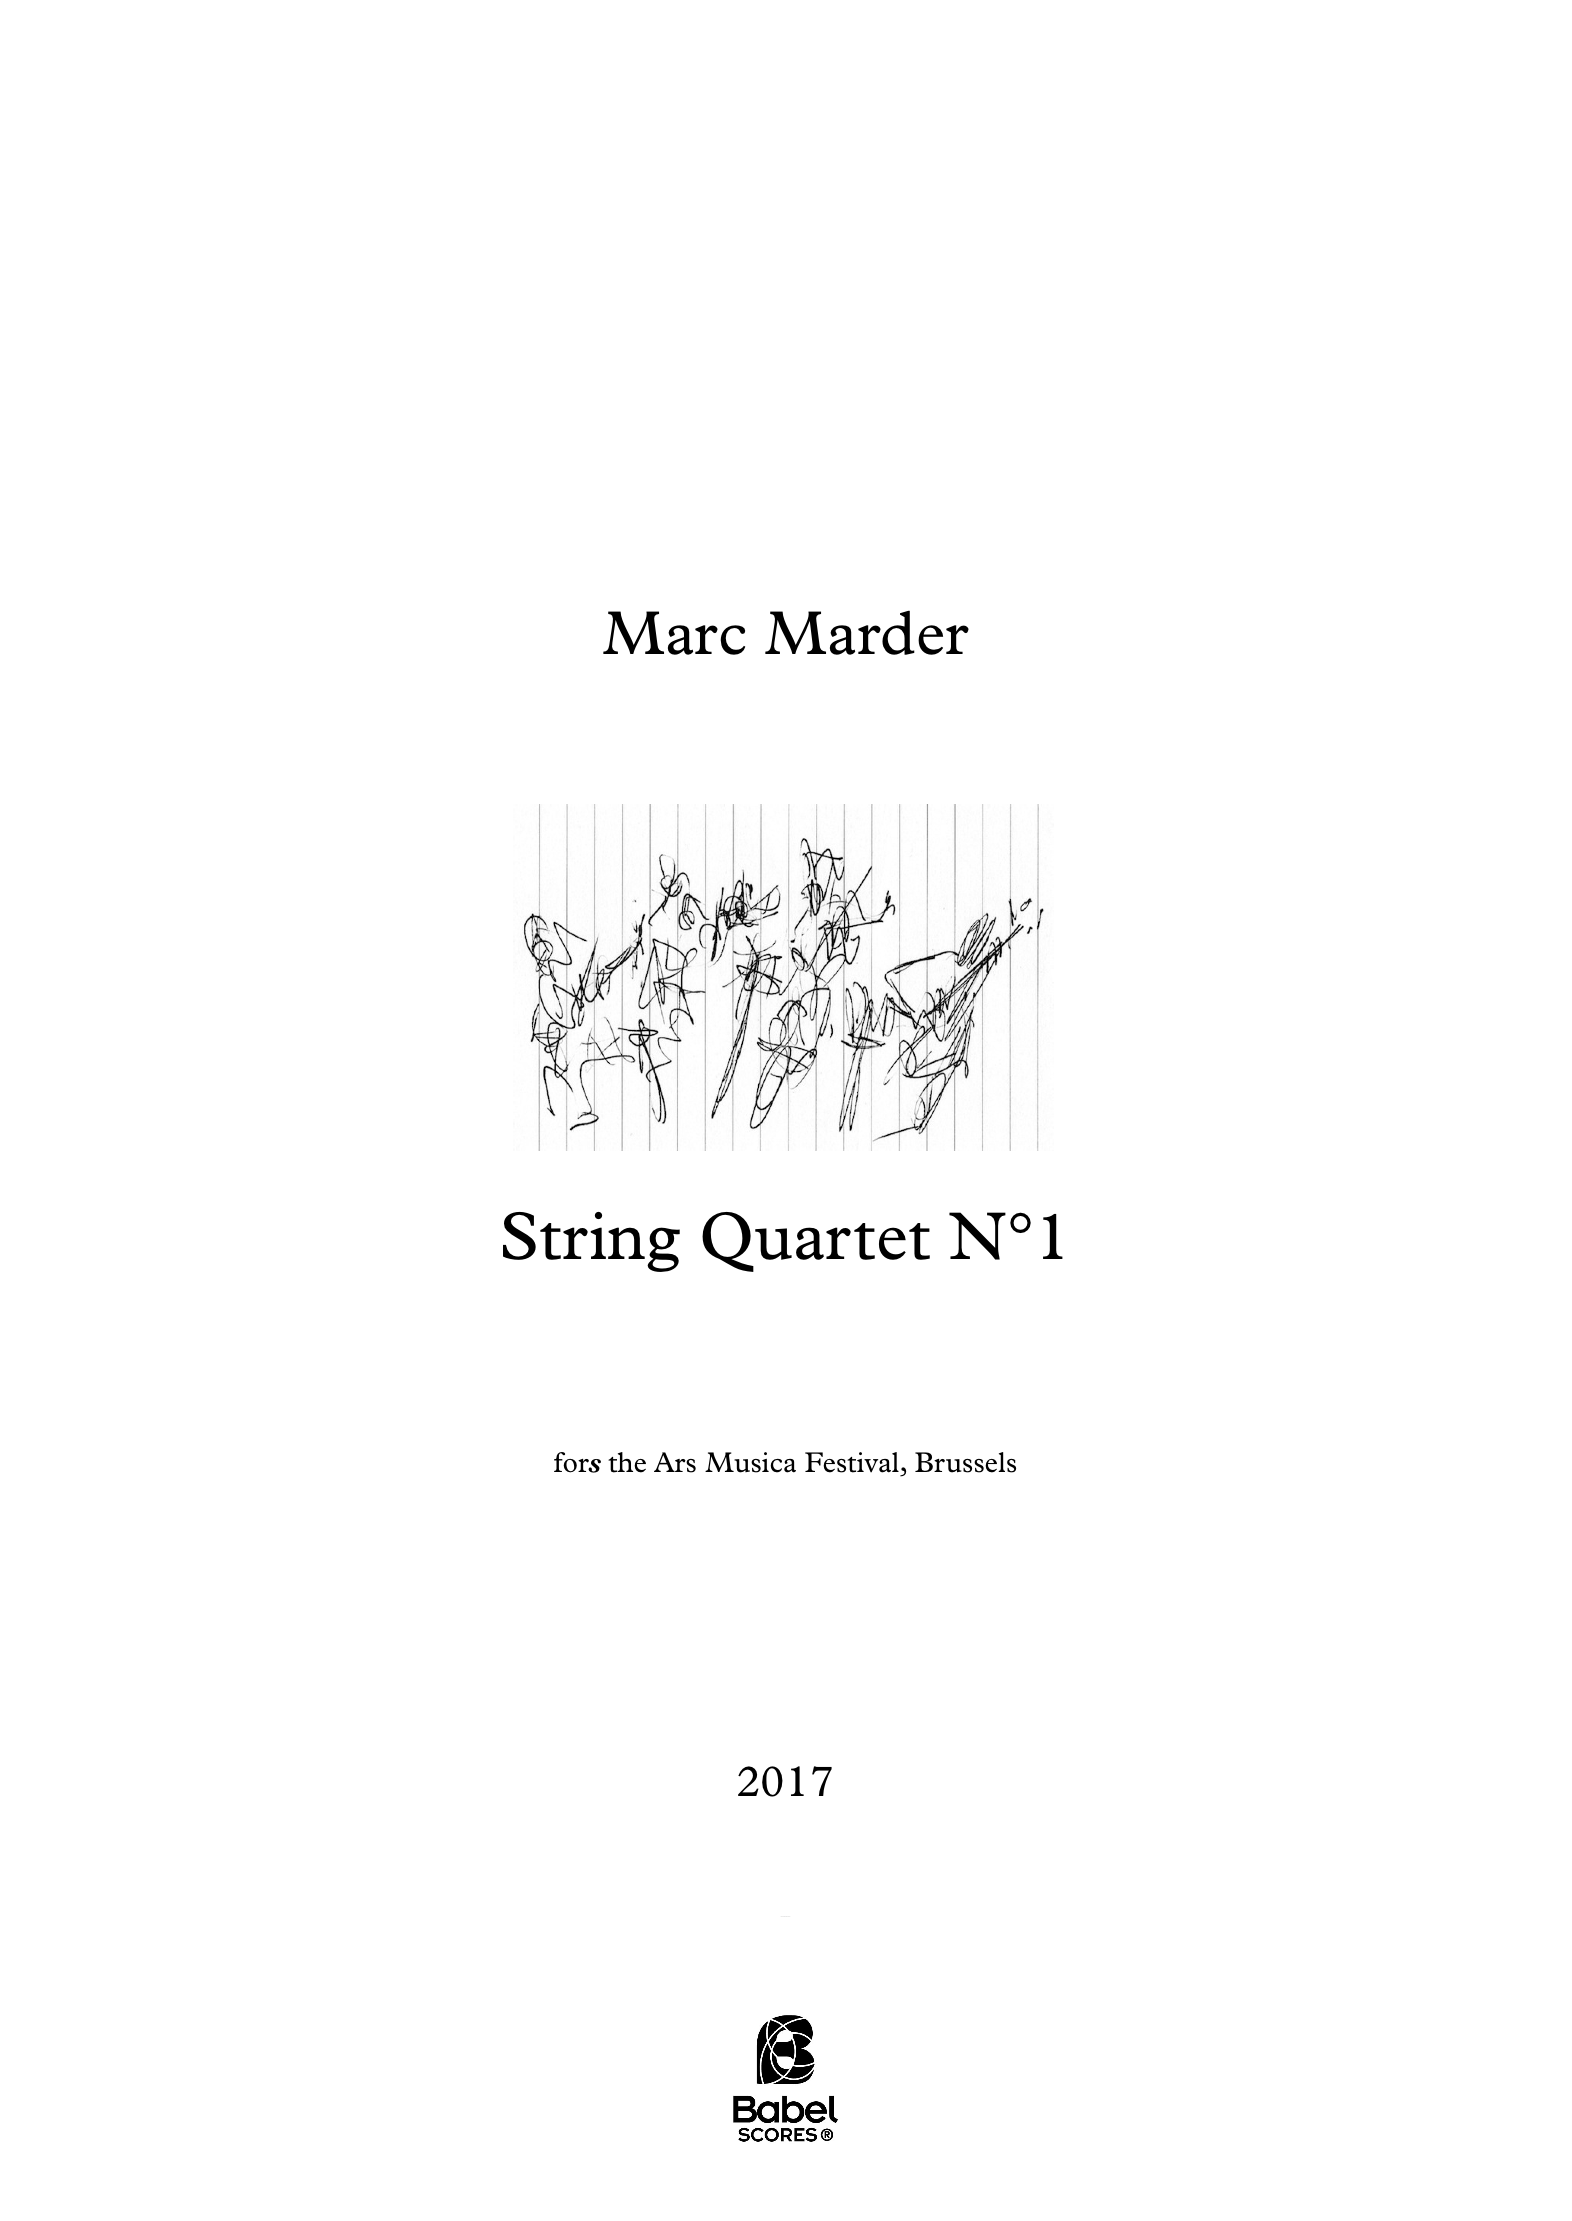 String Quartet N 1 A4 z 2 267 1 251